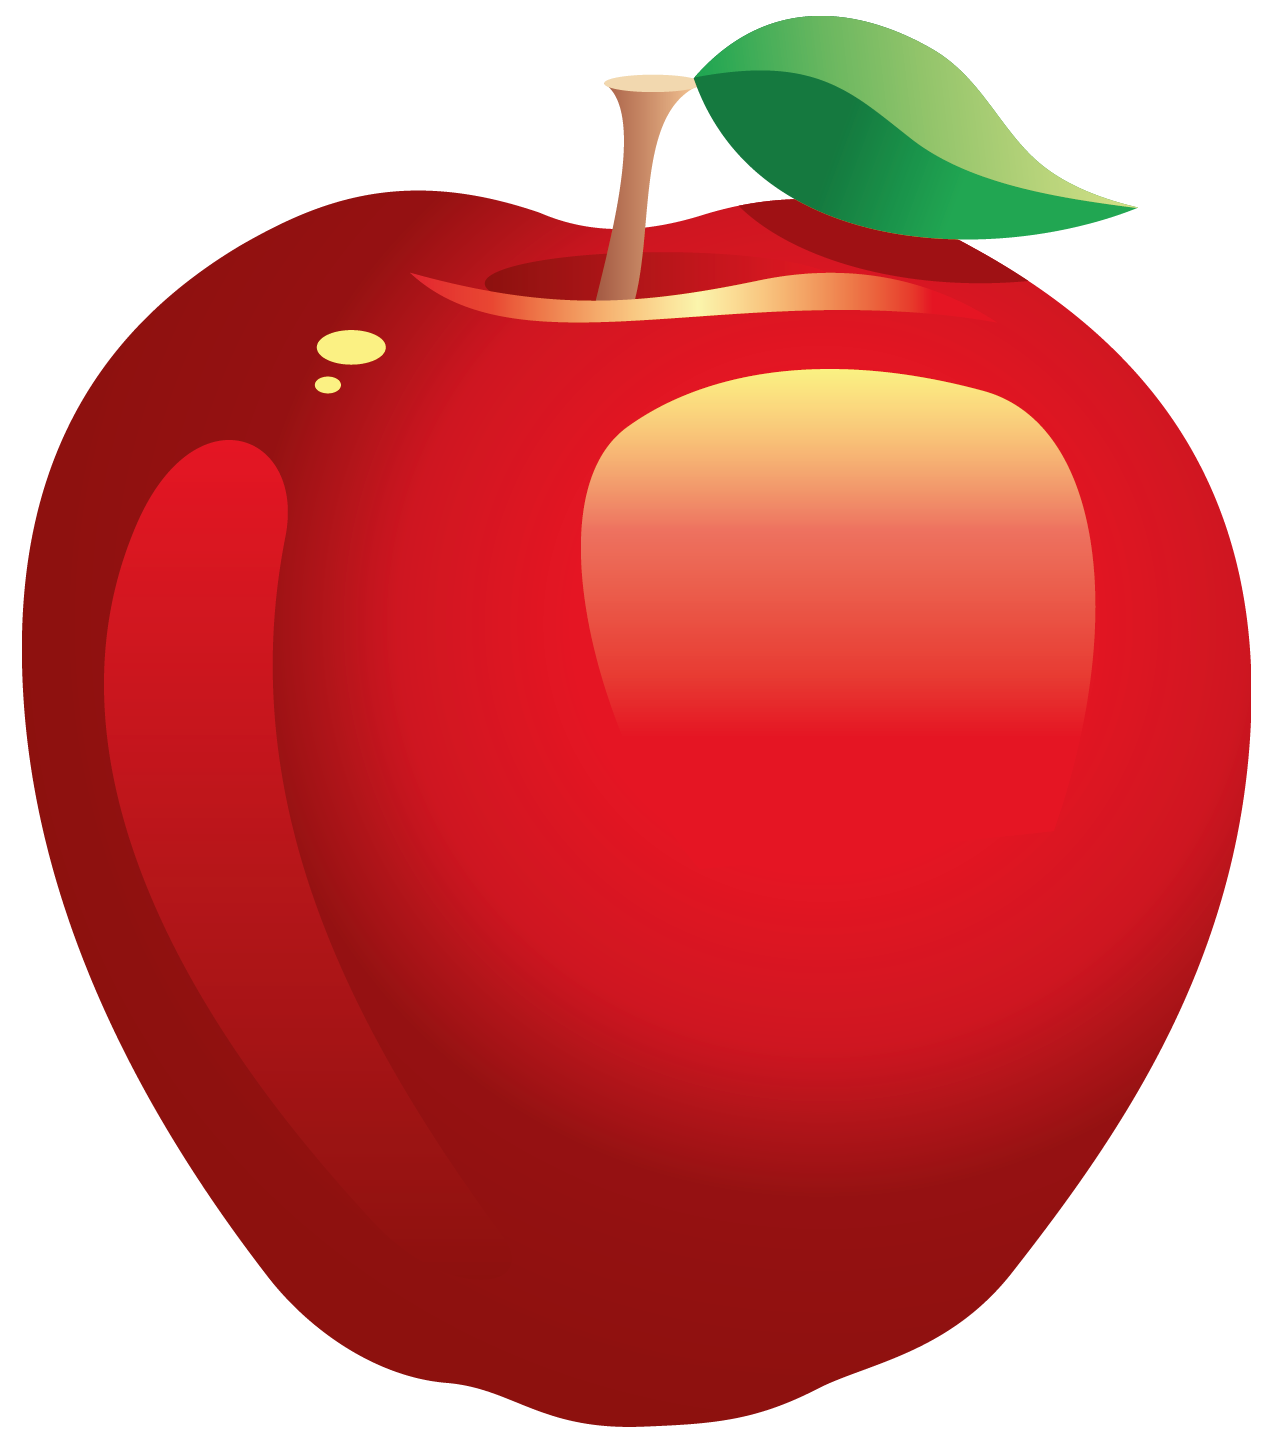 Red Apple - ClipArt Best